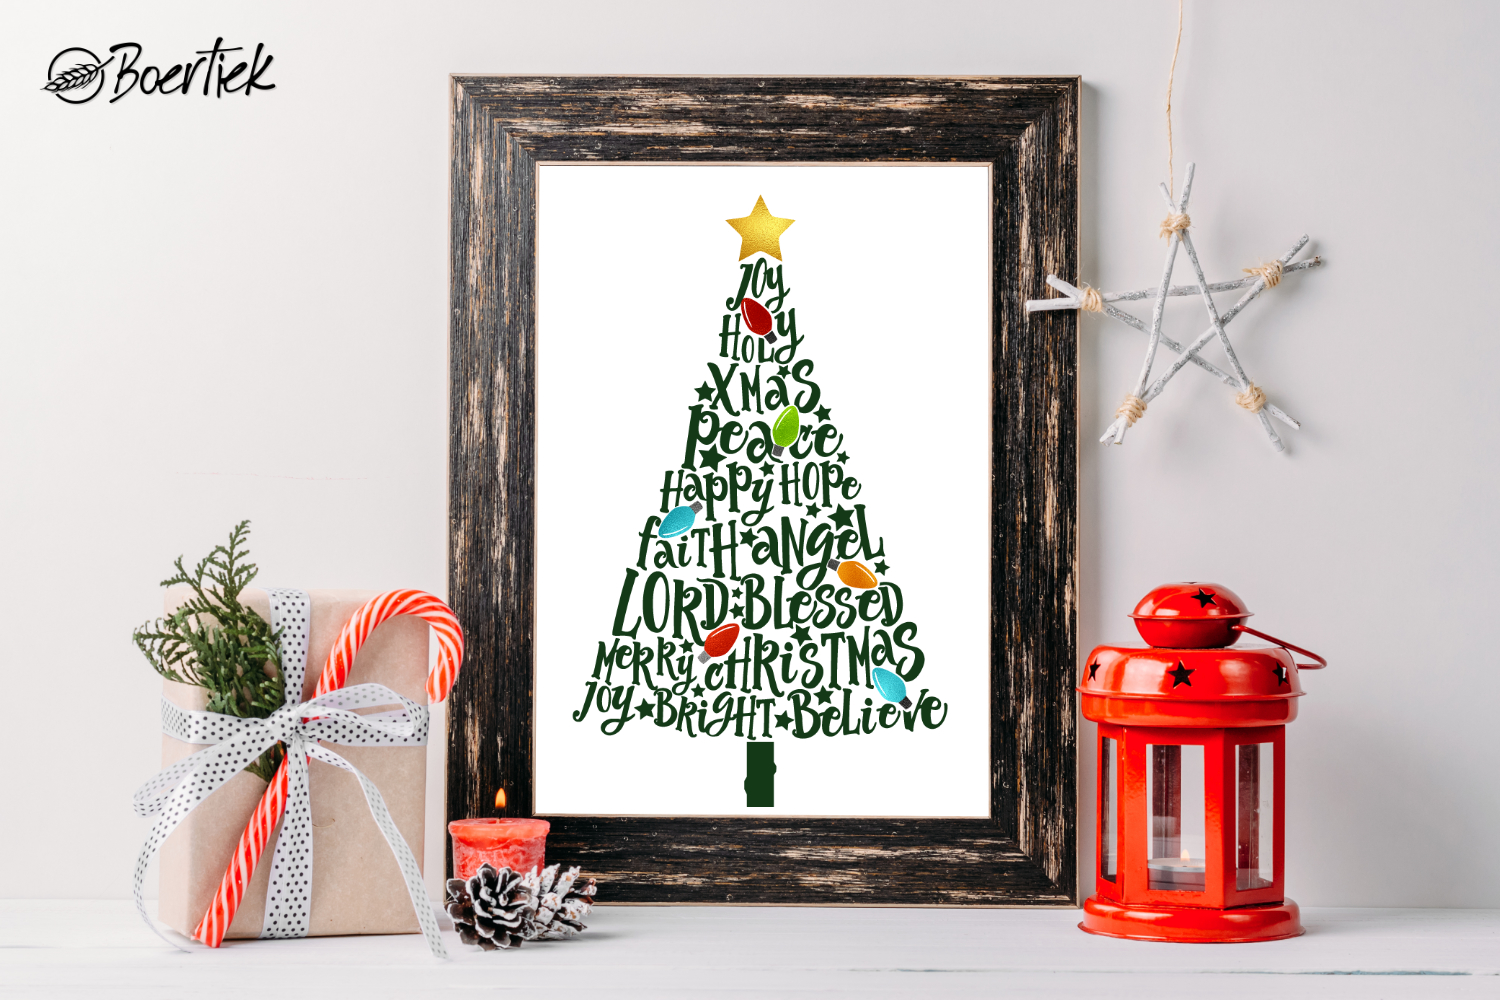 Download Free Christmas Tree Graphic By Boertiek Creative Fabrica for Cricut Explore, Silhouette and other cutting machines.